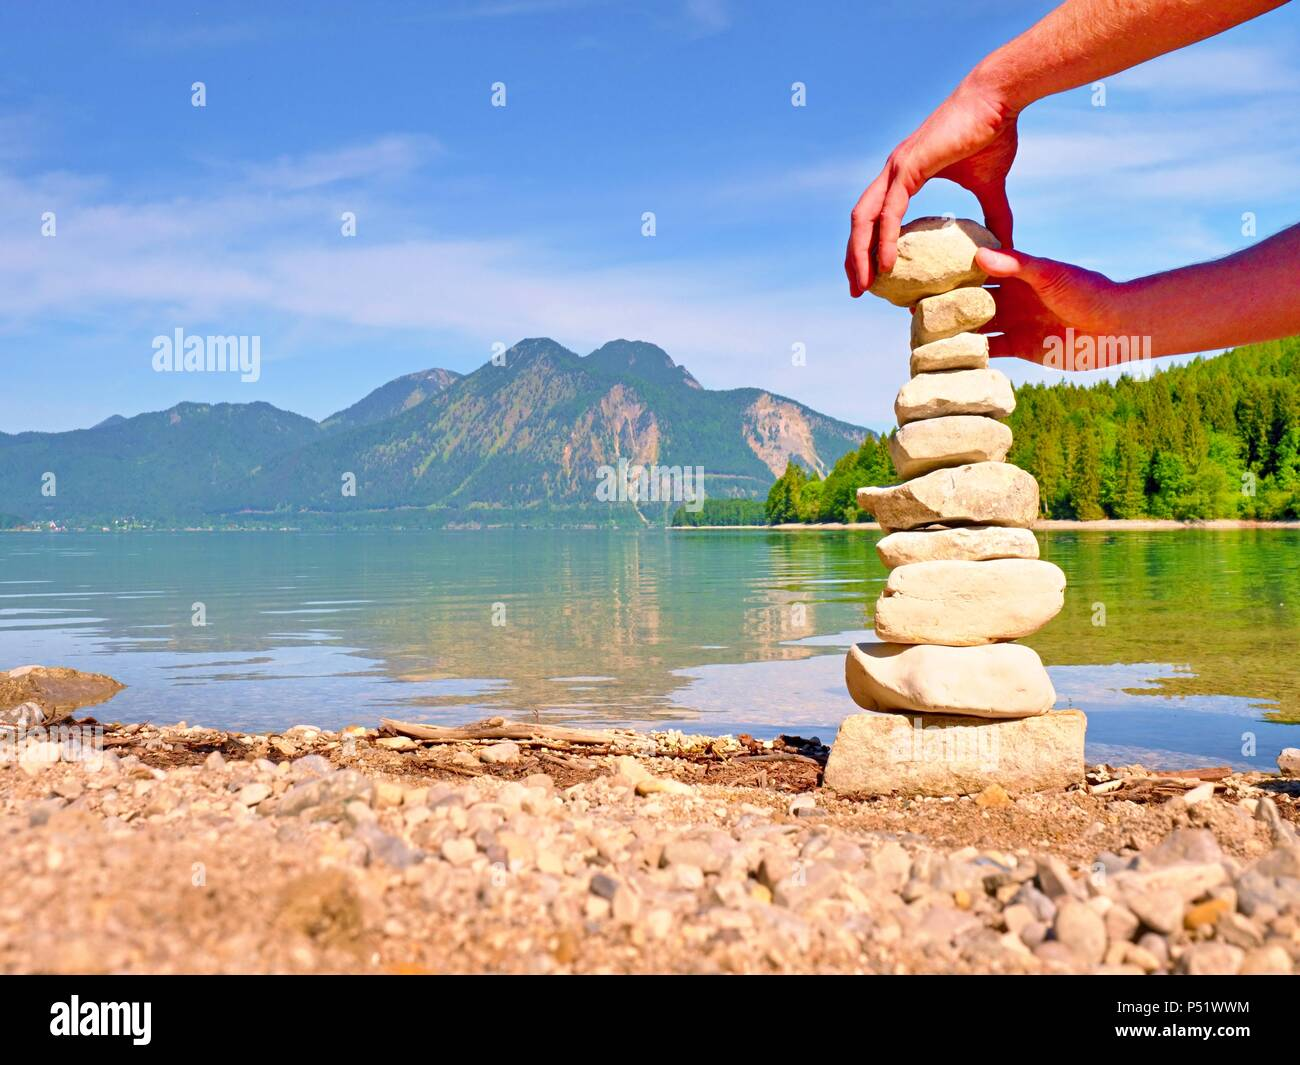 Pyramid of flat stones on a pebbly lake beach, the mountains mirroring in smooth water level. - Stock Image